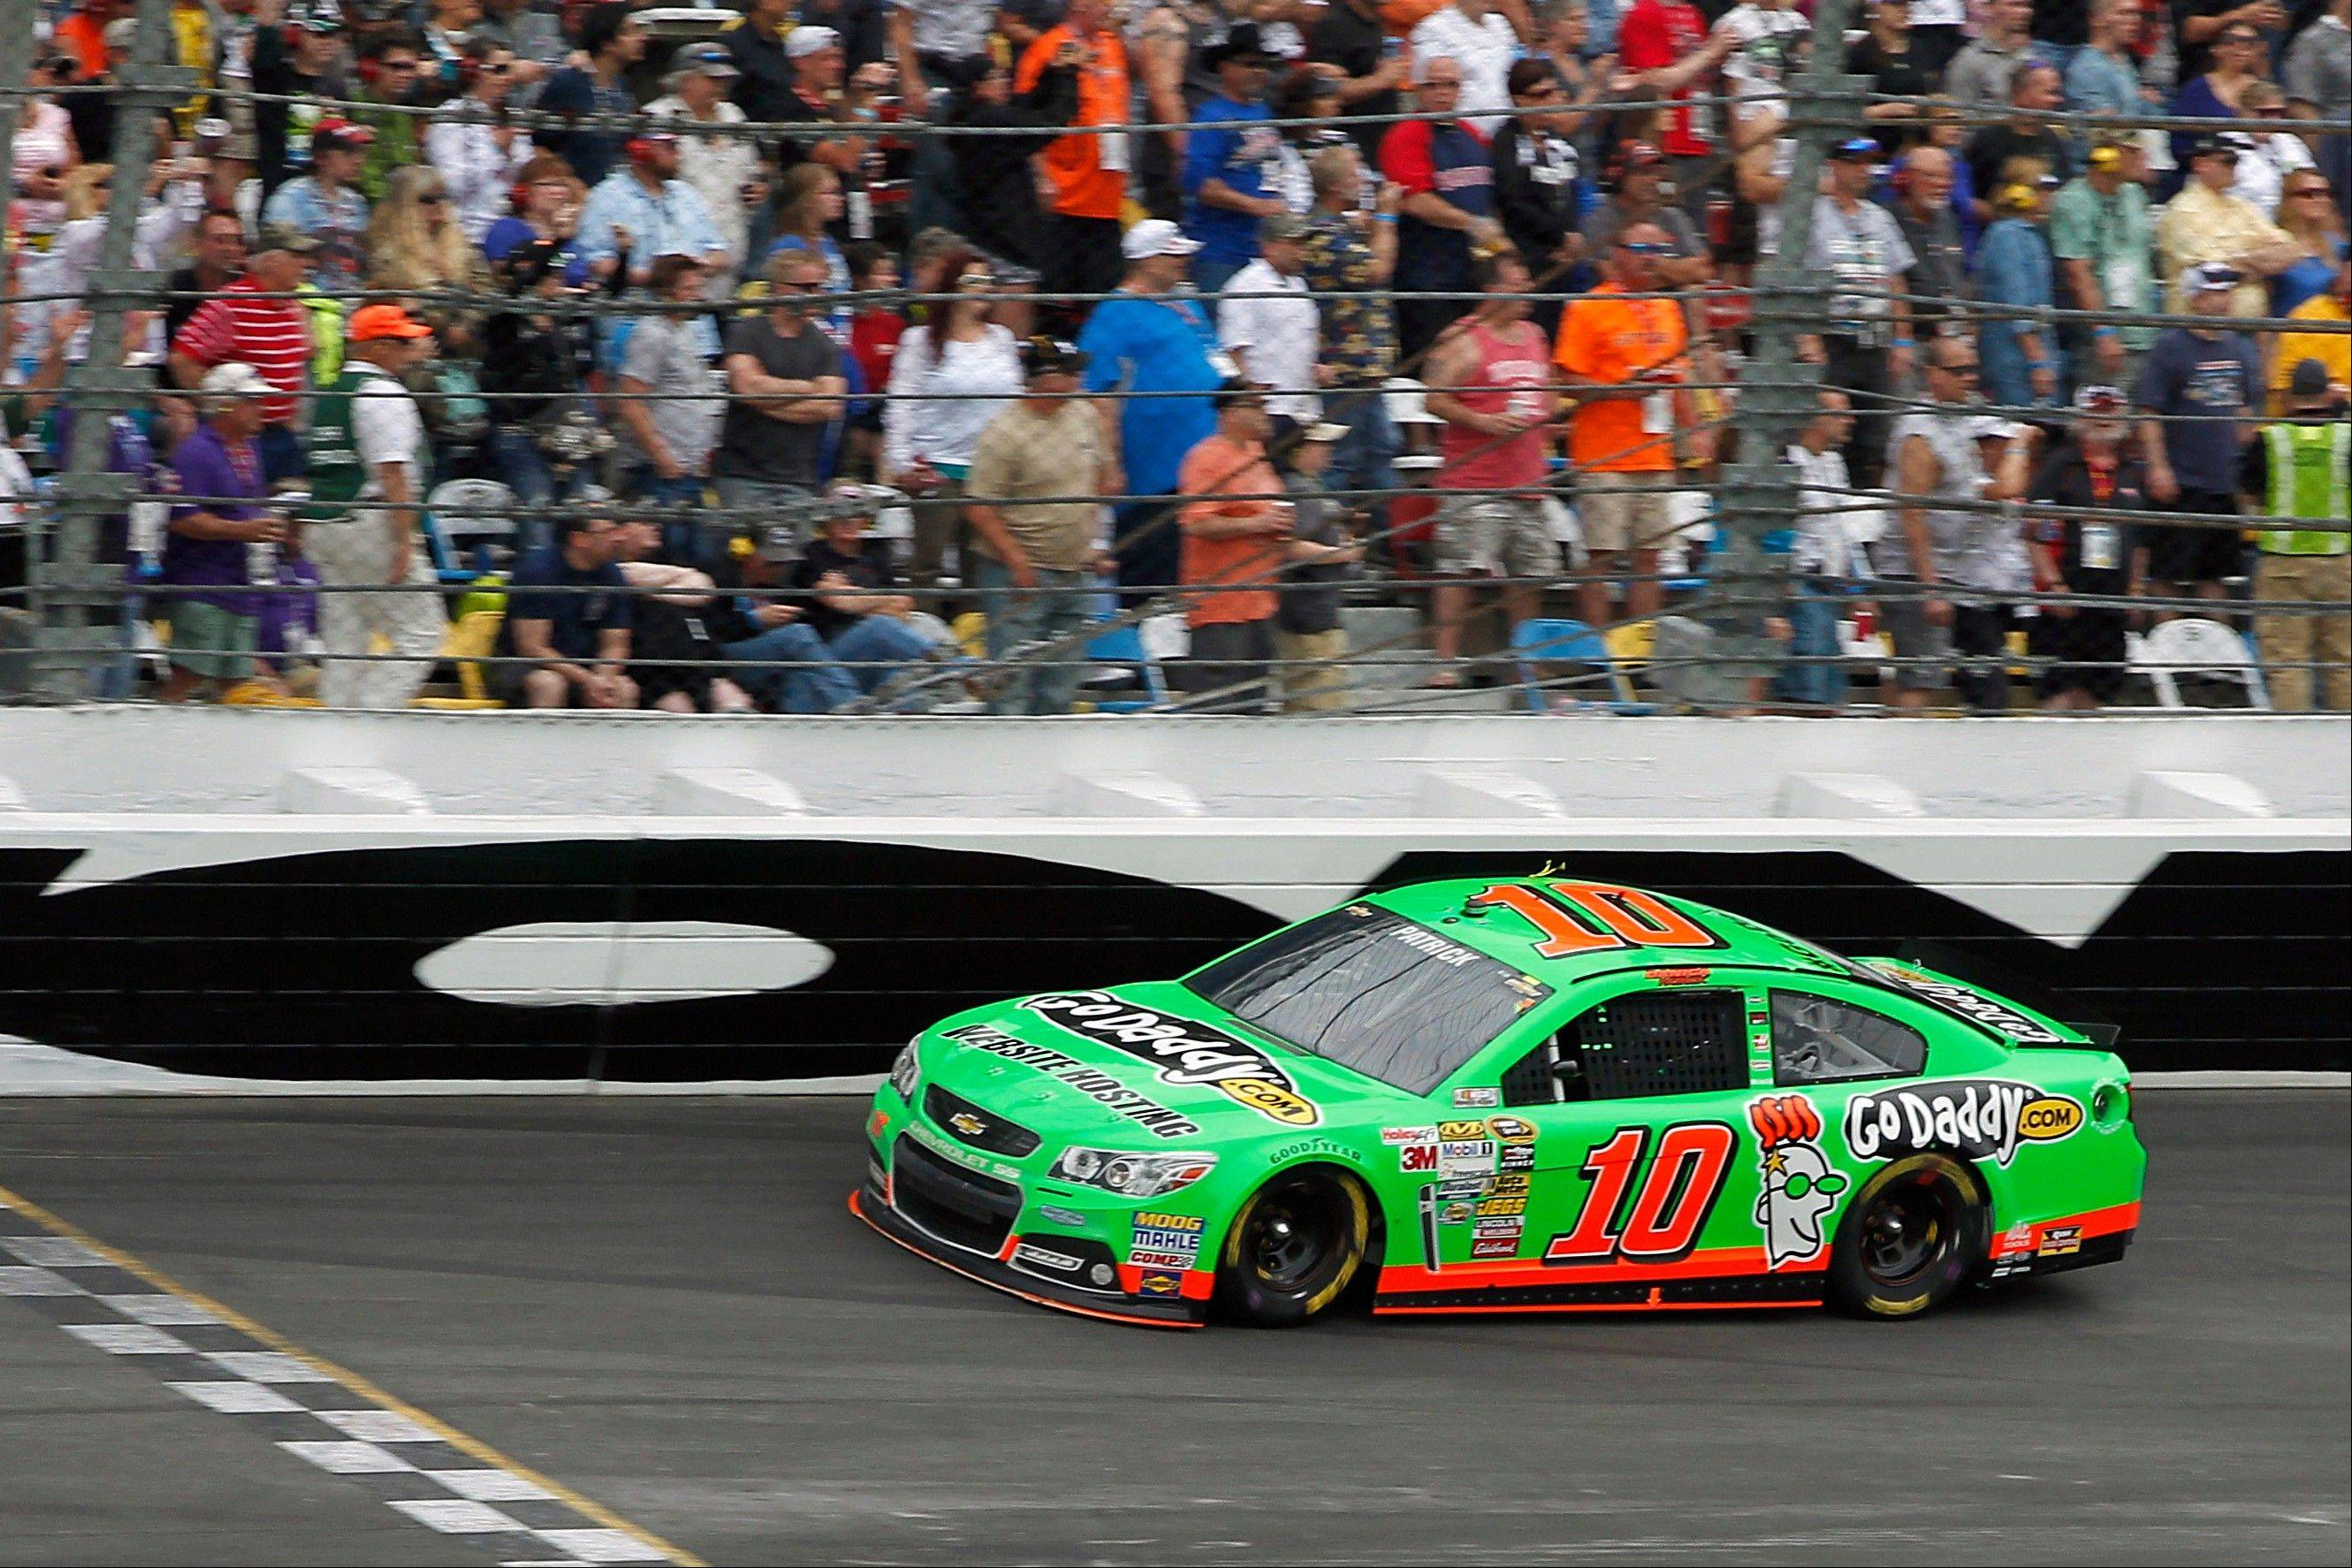 Danica Patrick's eighth-place finish in the Daytona 500 helped Fox post a 30 percent increase in its television ratings for the race, according to preliminary figures. It was the highest finish ever by a female driver at the Daytona 500.